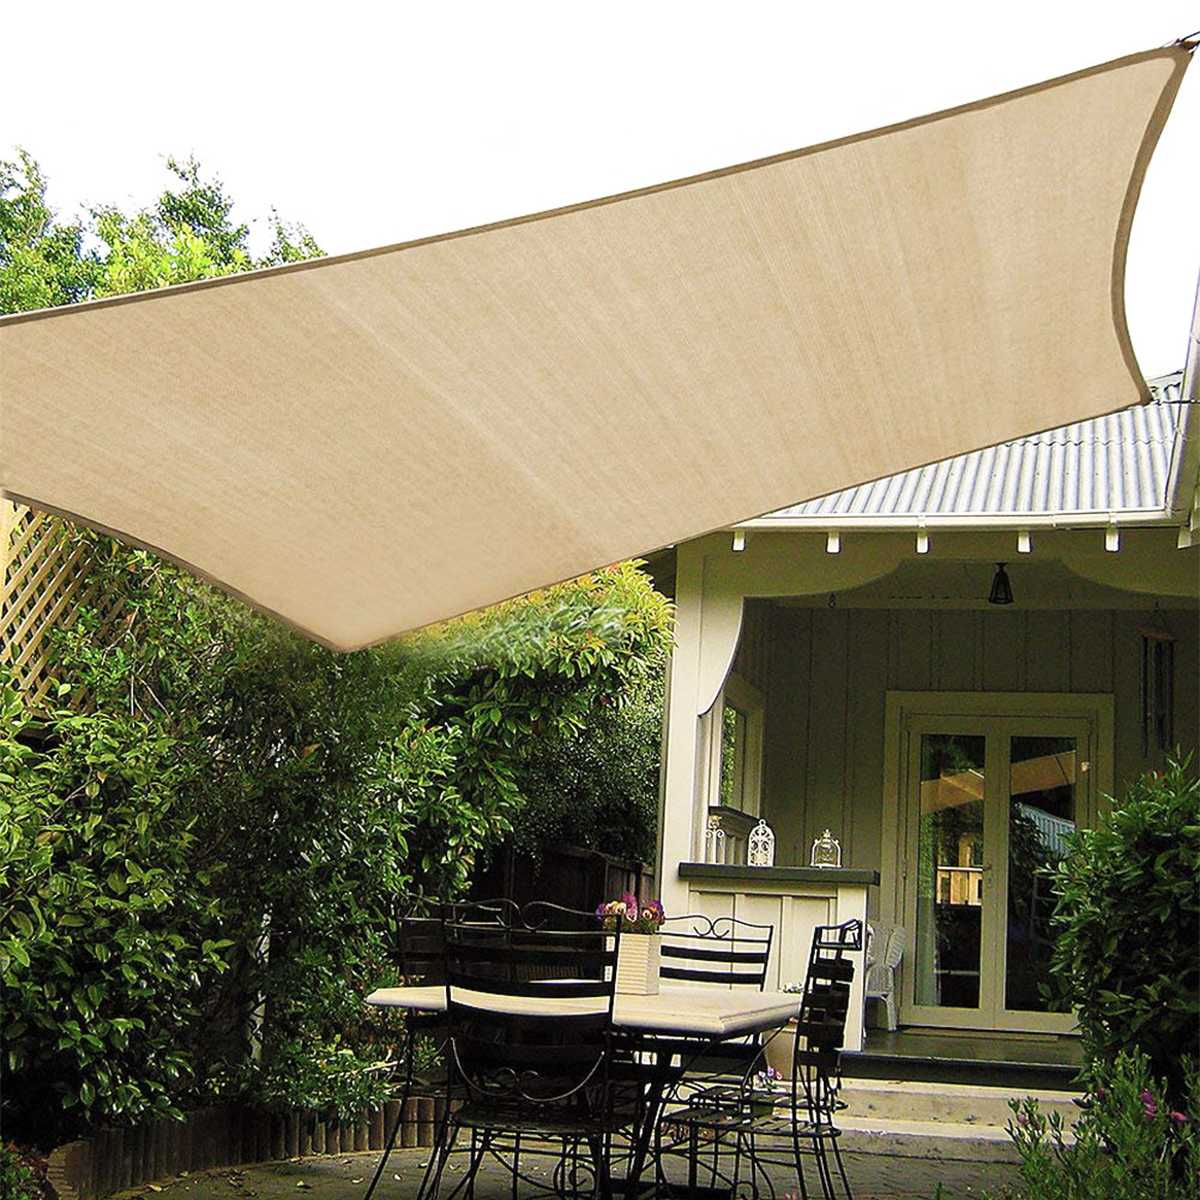 Right-angled Triangle Square Rectangular Beige Rectangular Square Home Garden Outdoor Waterproof Sunshade Canvas